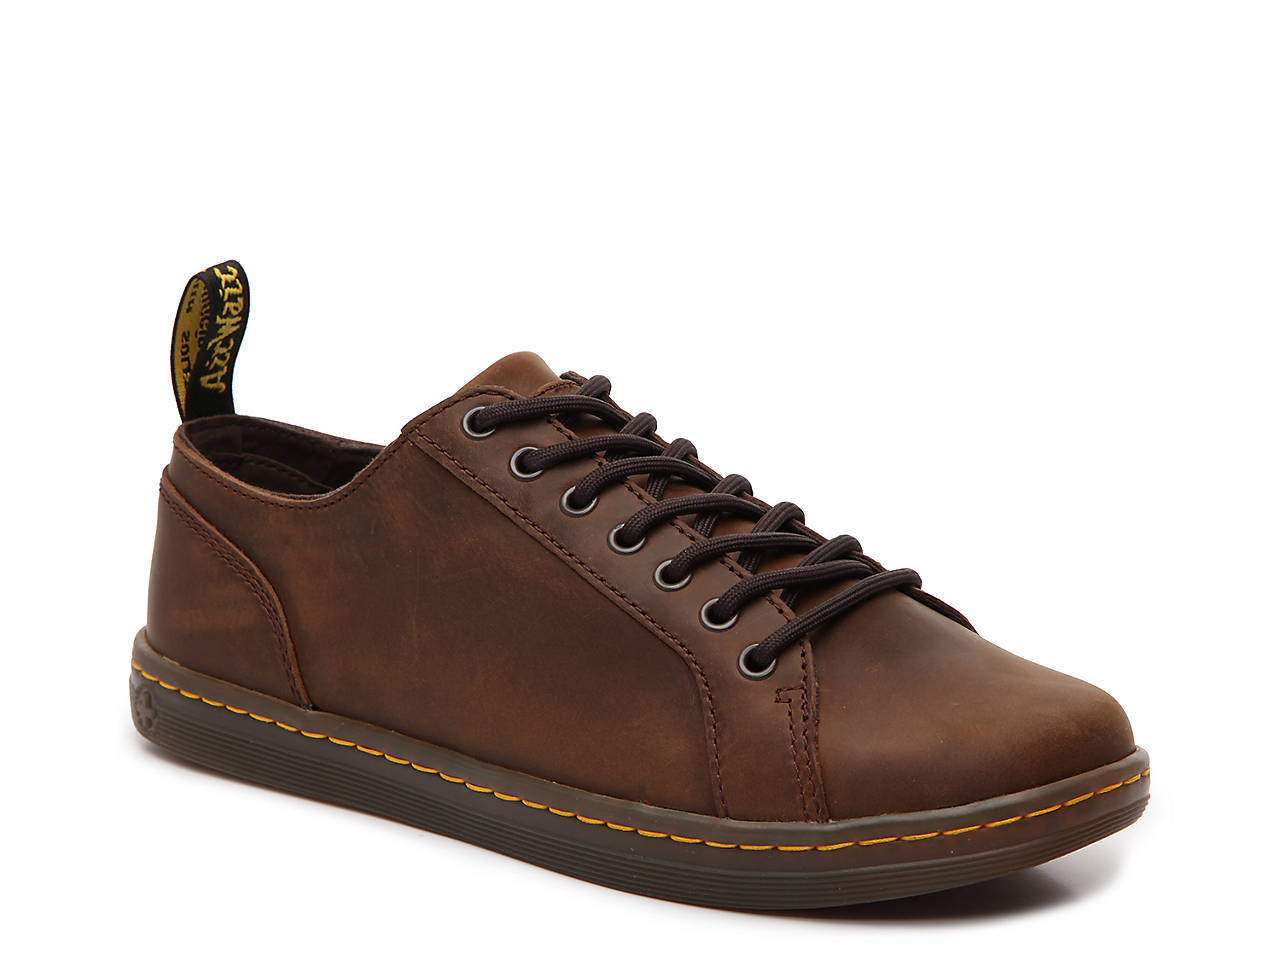 Dr. Martens Calmont Sneaker Men s Shoes  bb8ced76600c